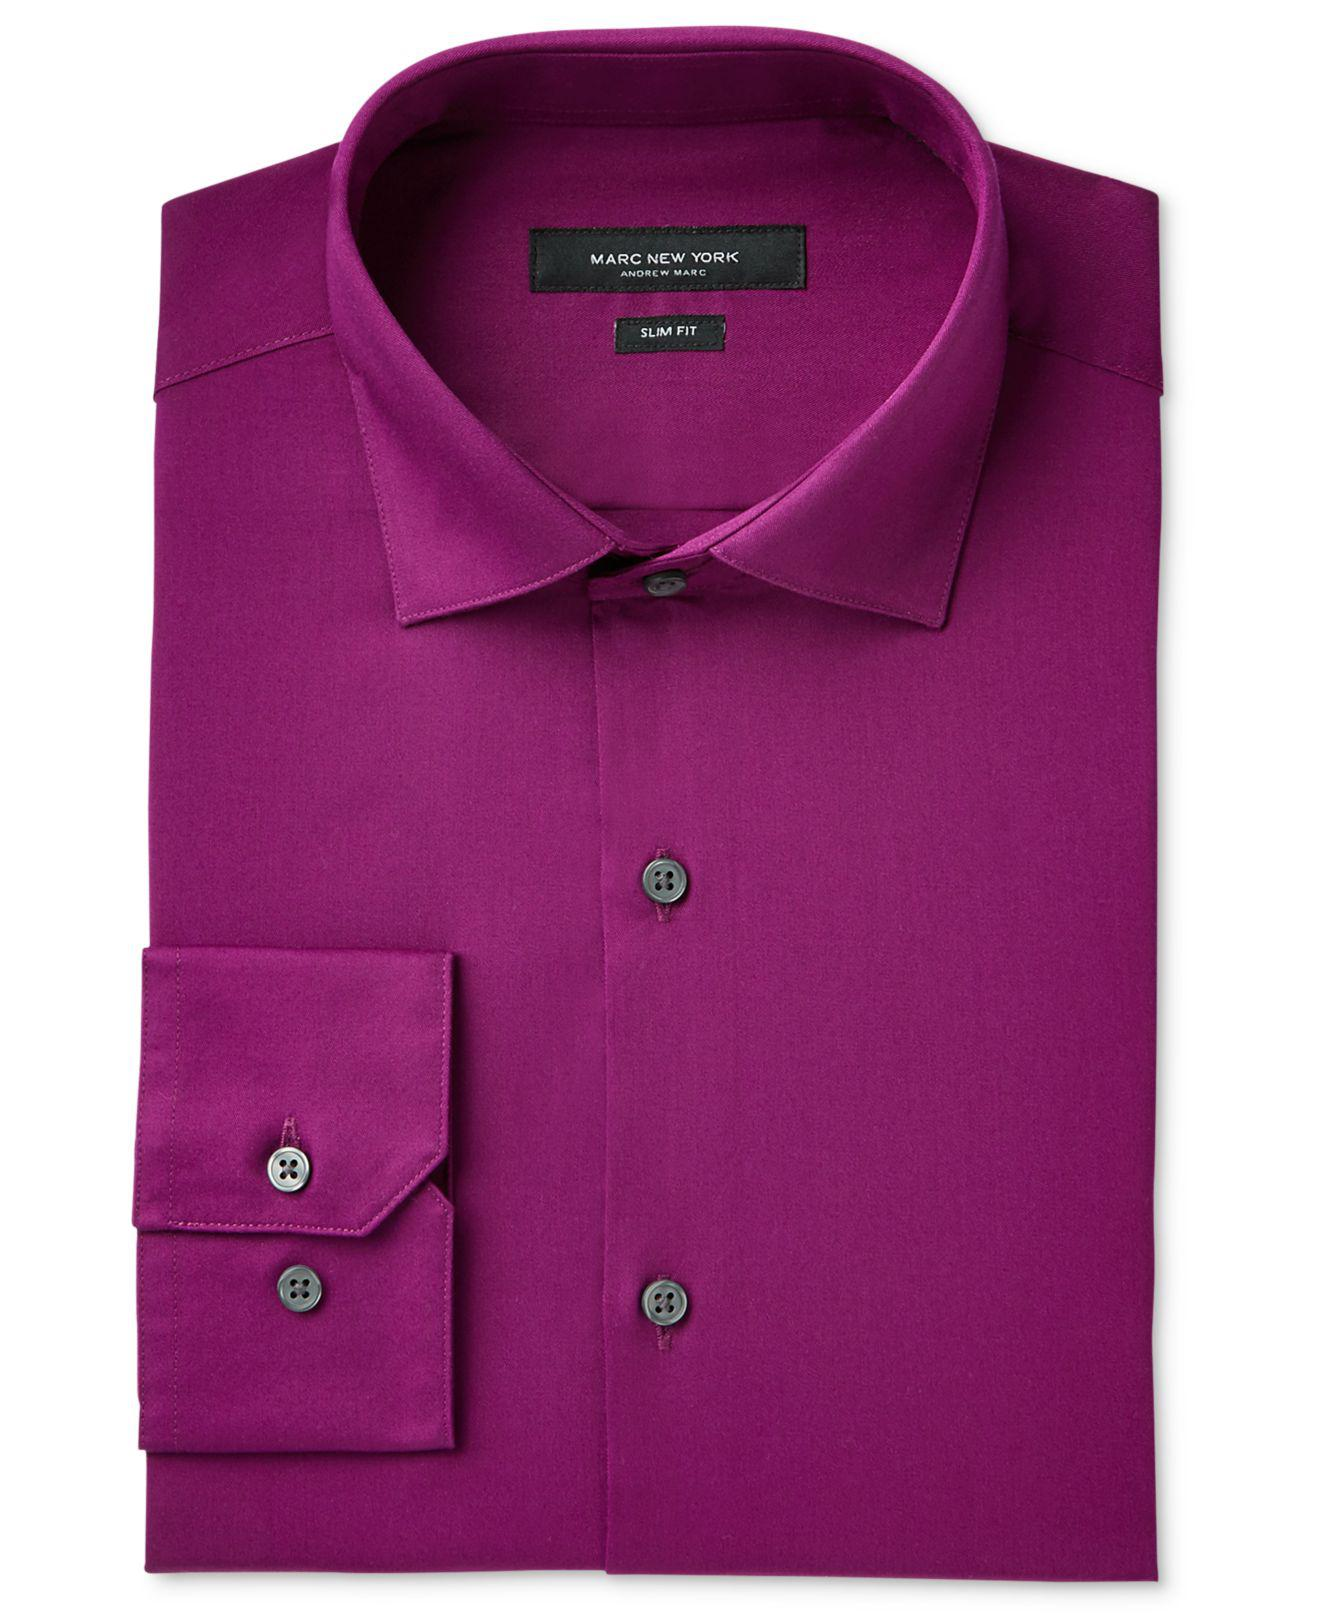 539d4b6e7b6 Mens Dress Shirts Macys « Alzheimer's Network of Oregon